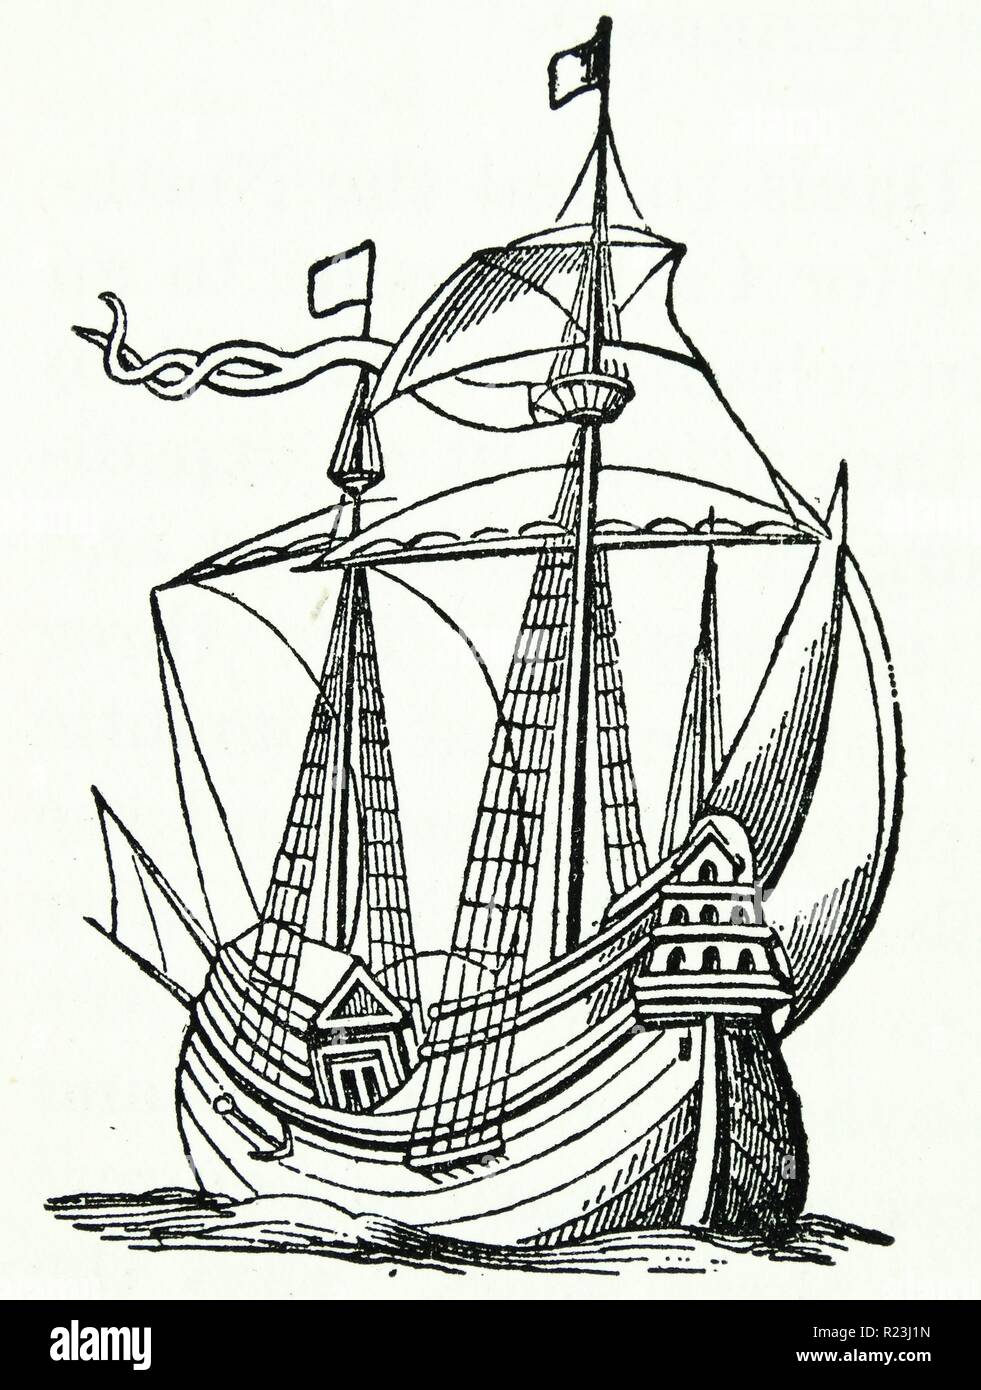 A ship of the late 16th century. From Ortelius 1598. - Stock Image